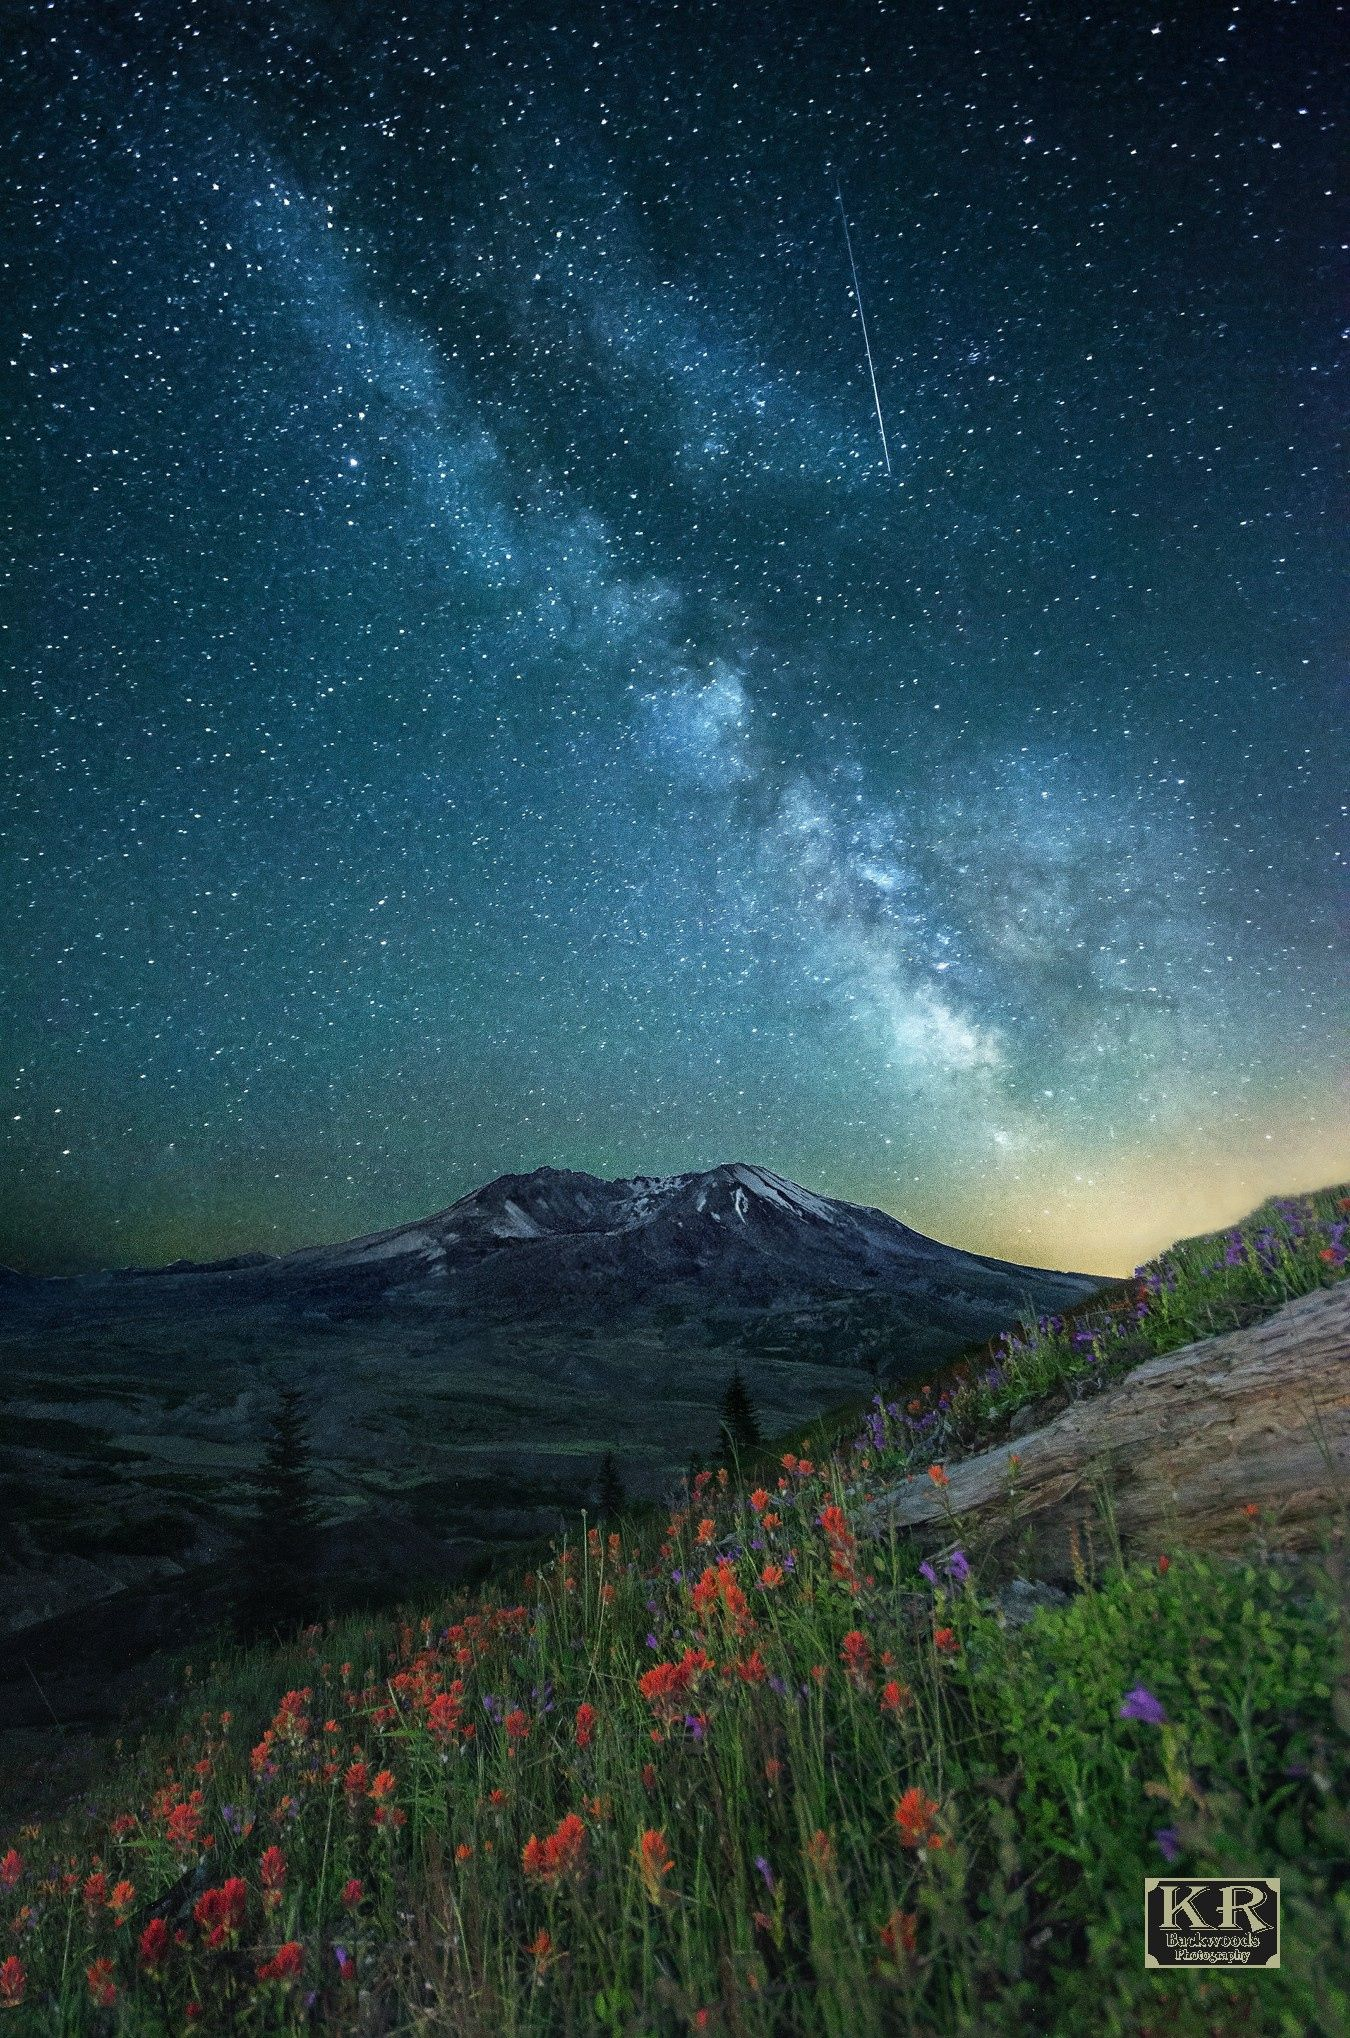 Wish Upon A Star By Kevin Russell On 500px Nighttime Sky Photo Scenery